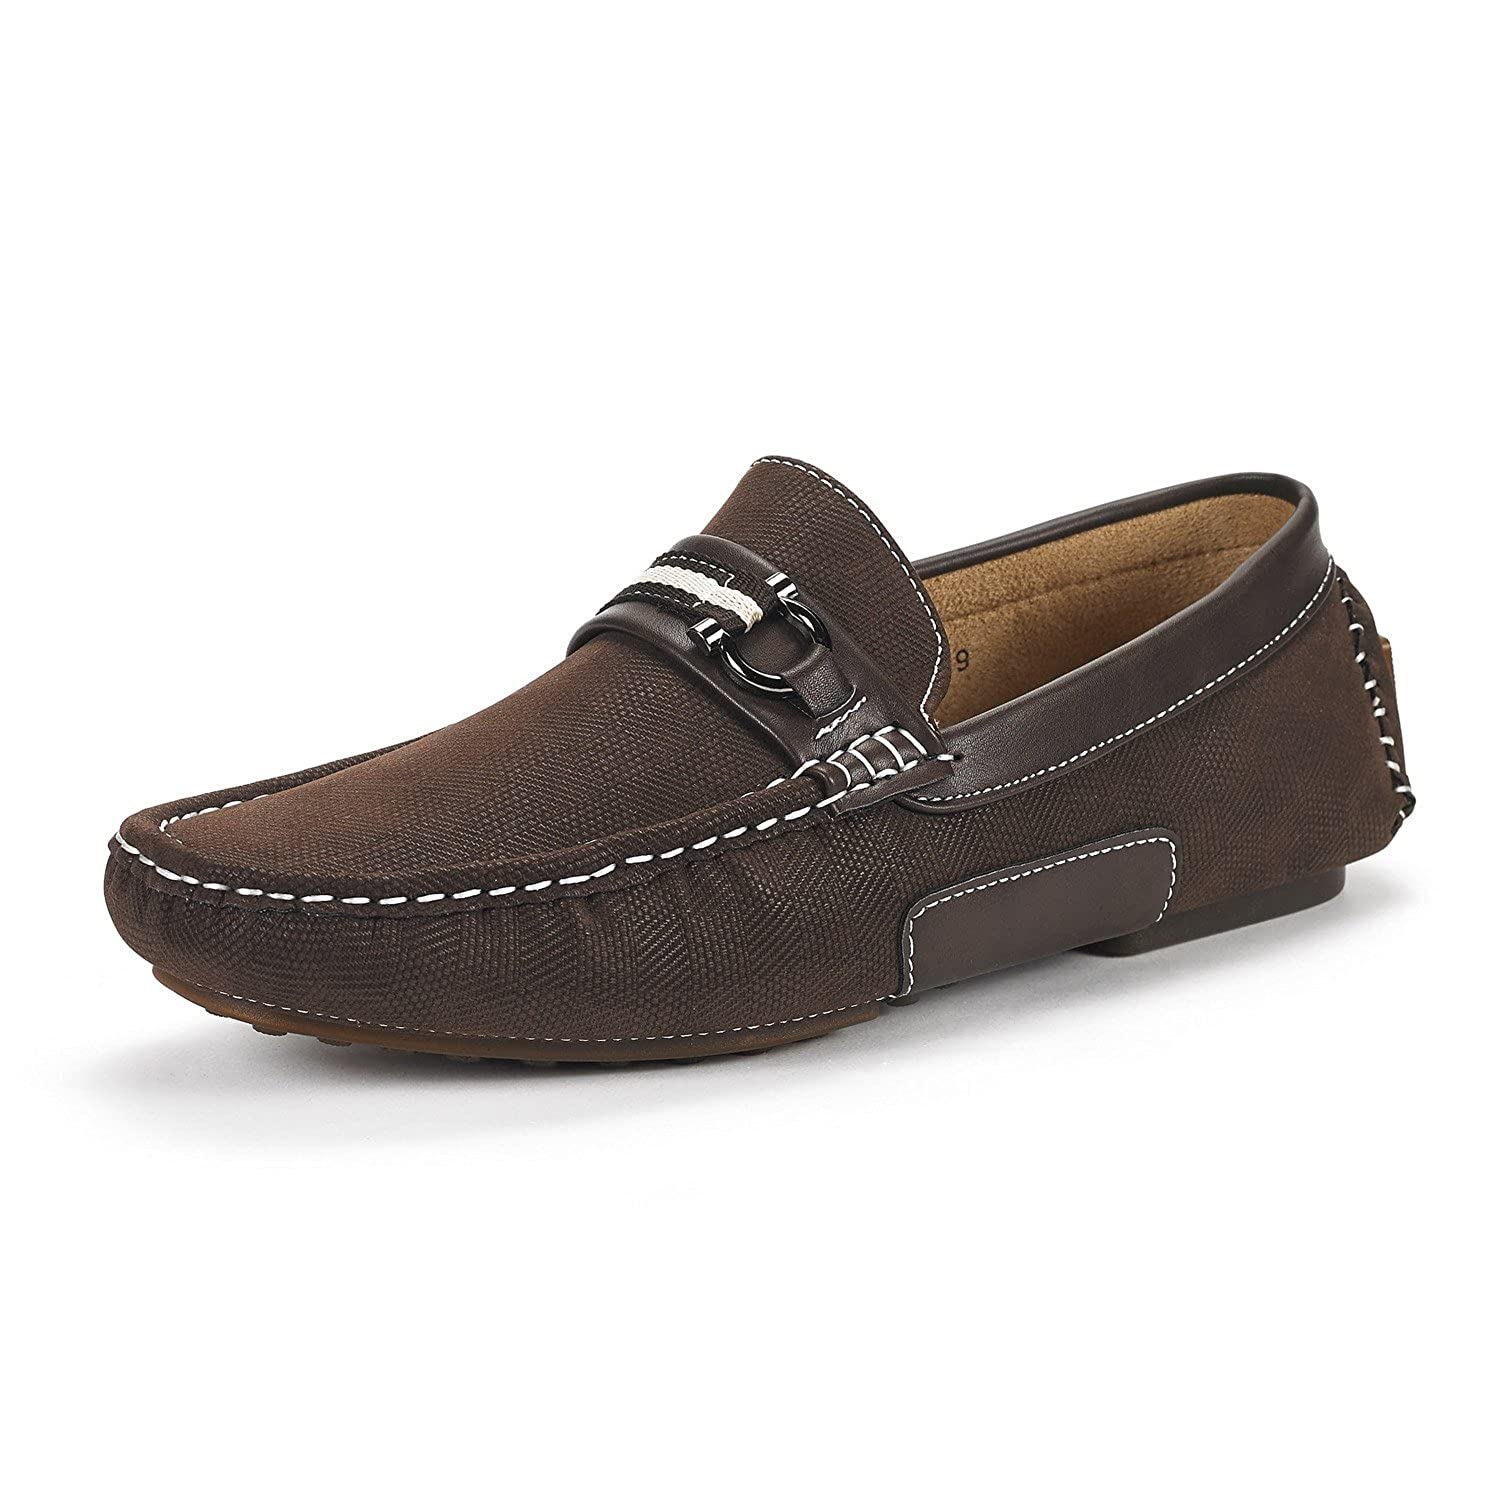 Bruno Marc New York Men's Santoni 05 Penny Loafers Moccasins Shoes by Bruno Marc New York